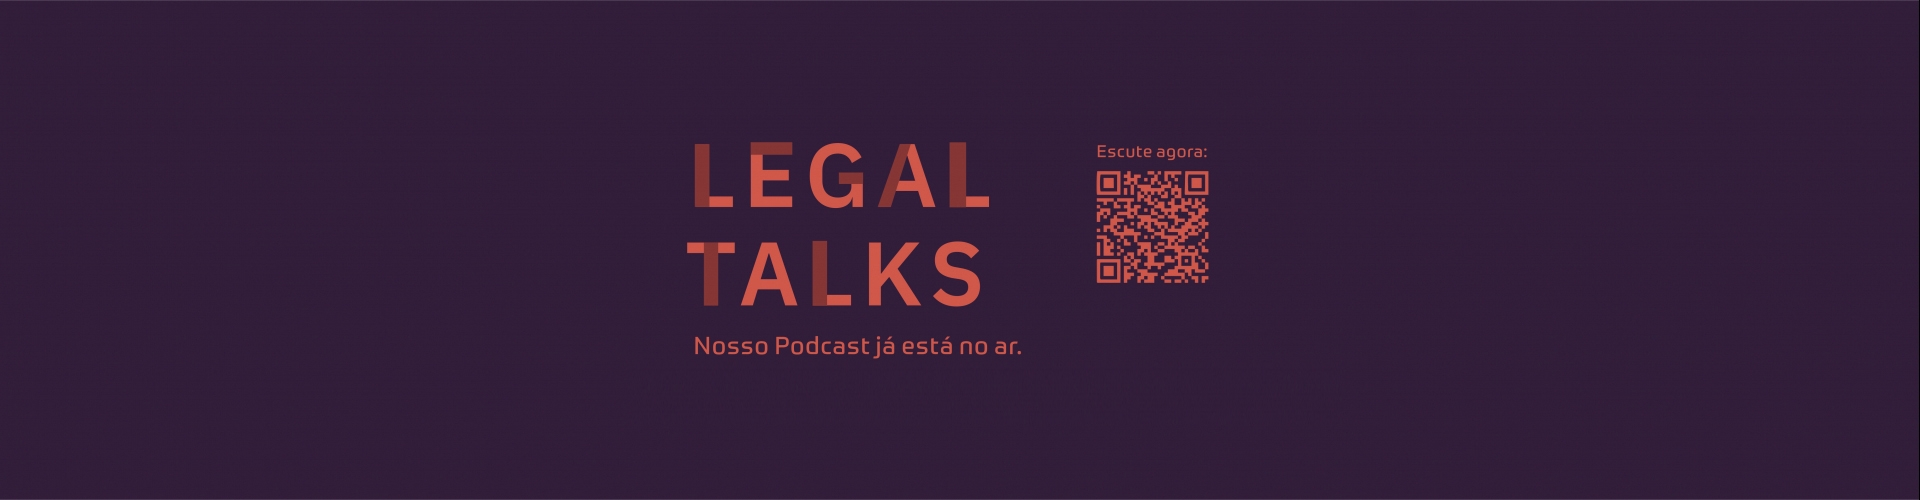 O Legal Talks, podcast de Queiroz Cavalcanti Advocacia, já está no ar!